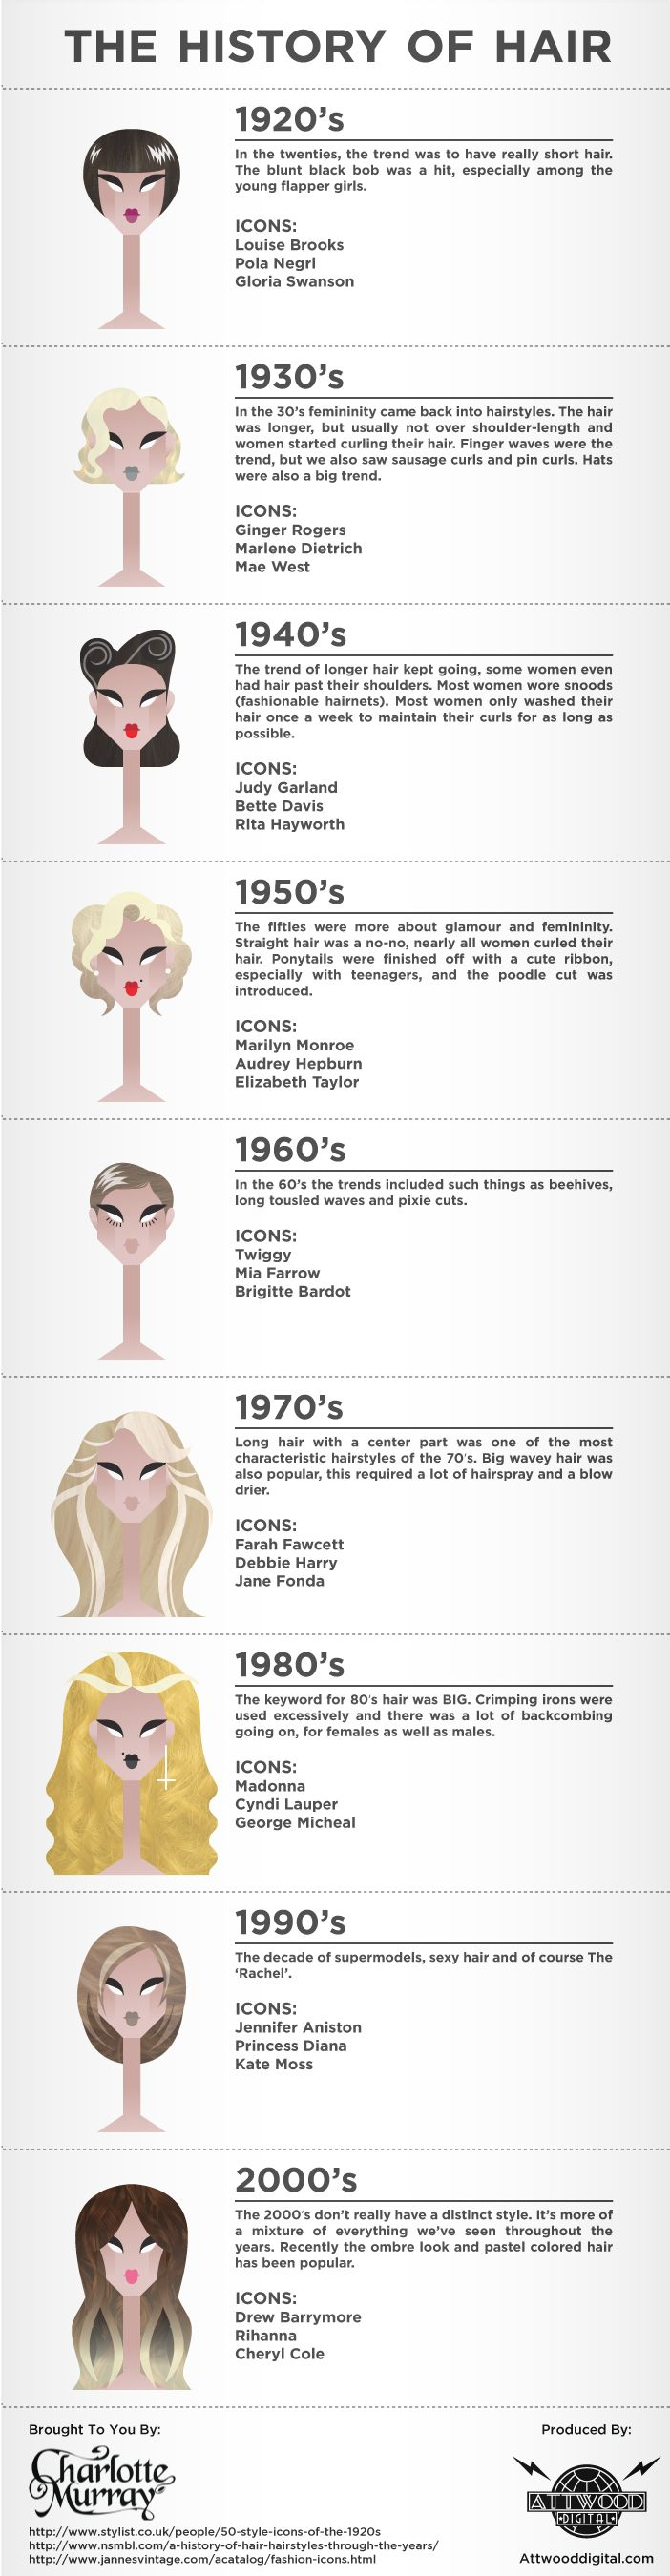 The History Of Hairstyles! So interesting and cool ;). xo